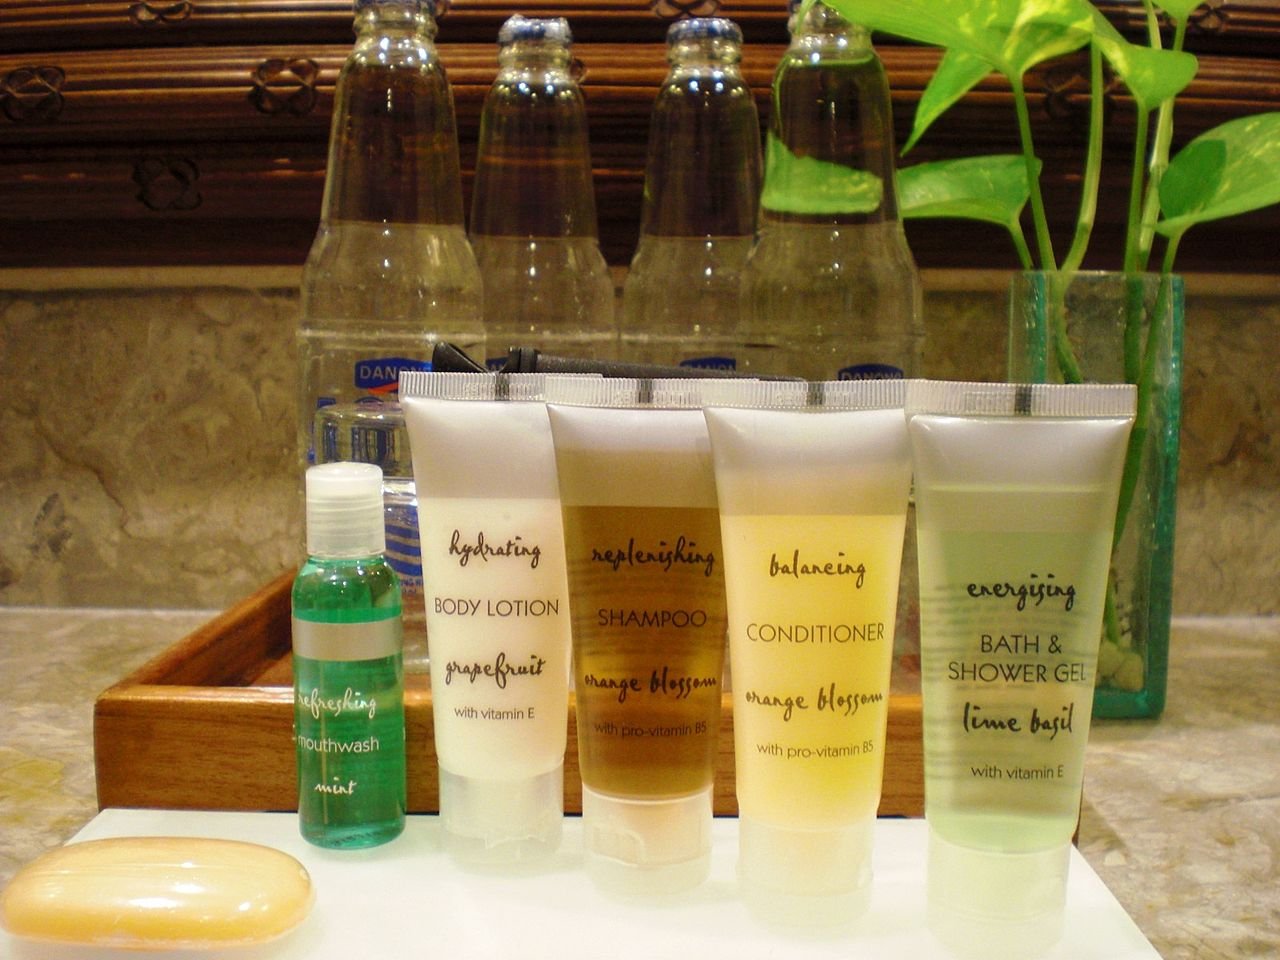 Bathroom Amenities file:le meridien nirwana bali bathroom amenities (2926913236)